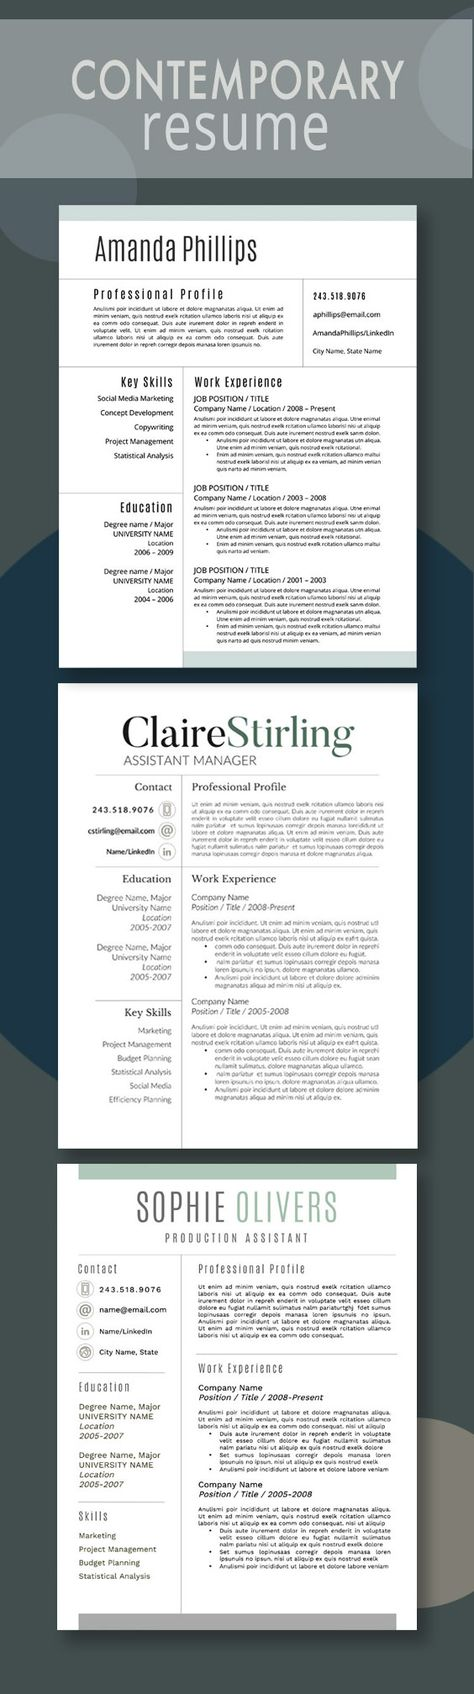 medical billing resumes%0A     best Resume Content images on Pinterest   Resume ideas  Resume tips and  Design resume